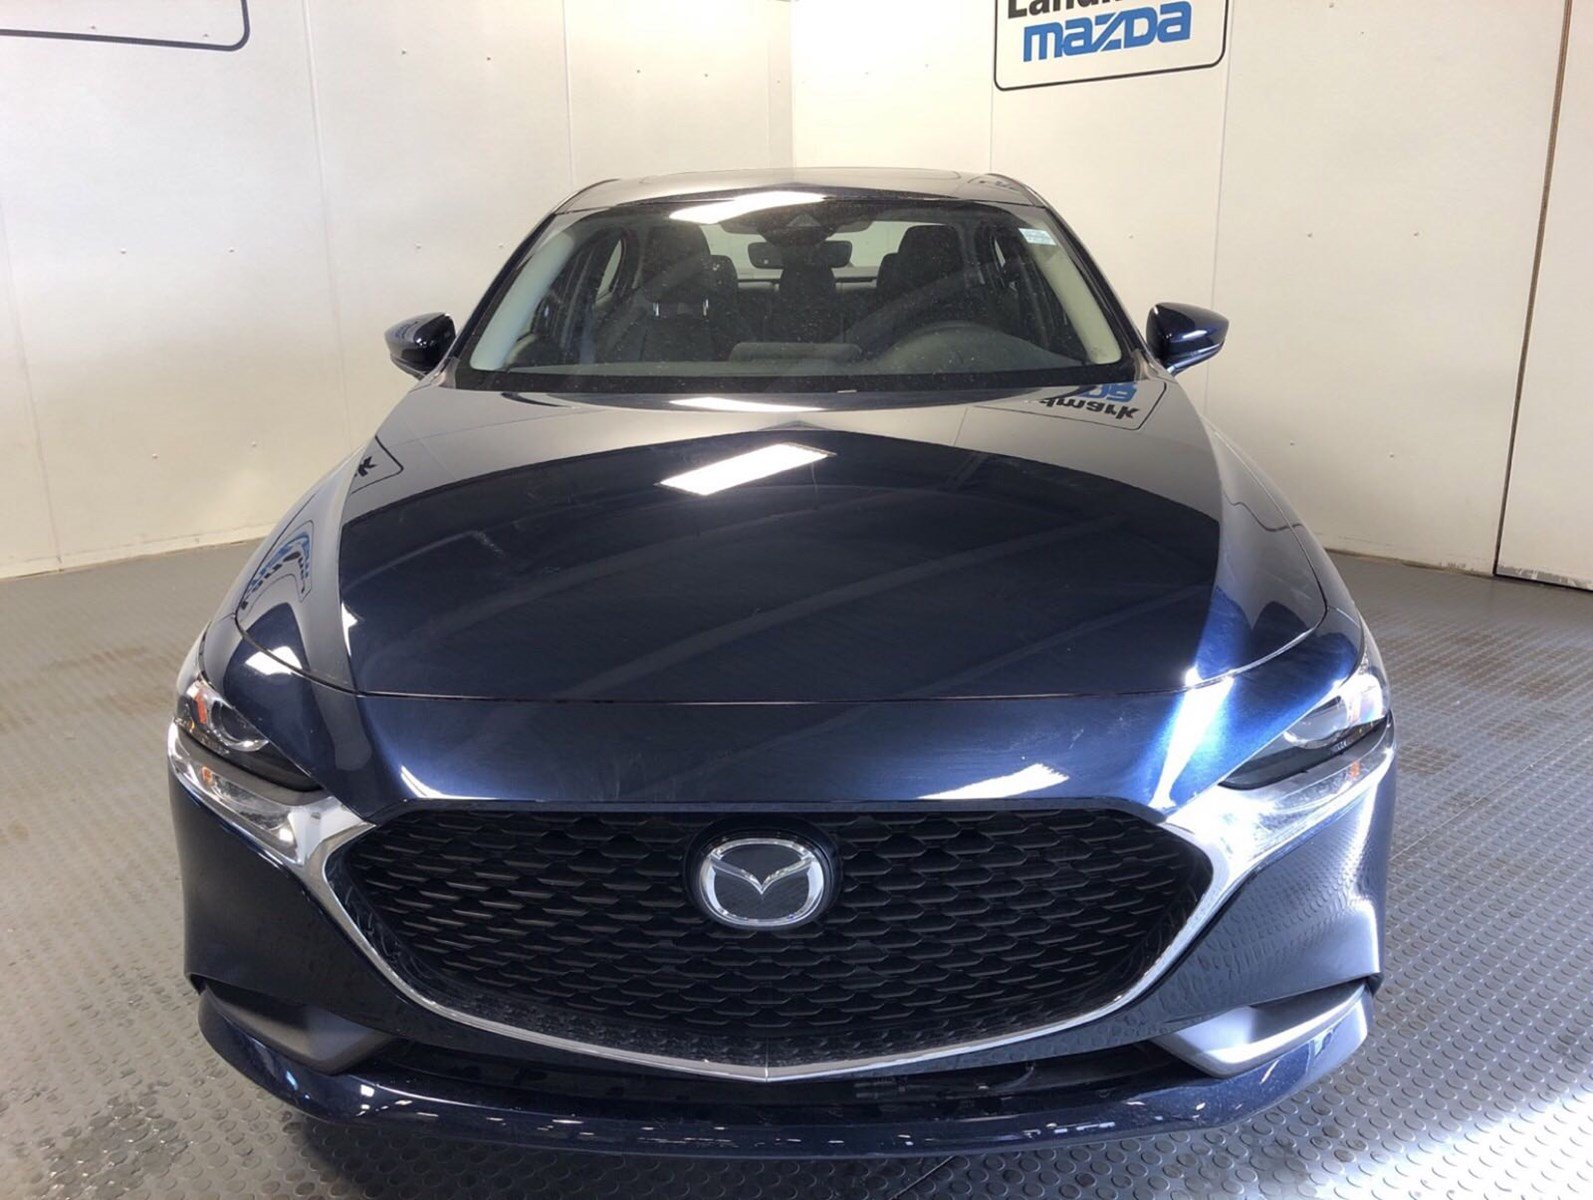 New 2019 Mazda3 GS w/ Luxury Package